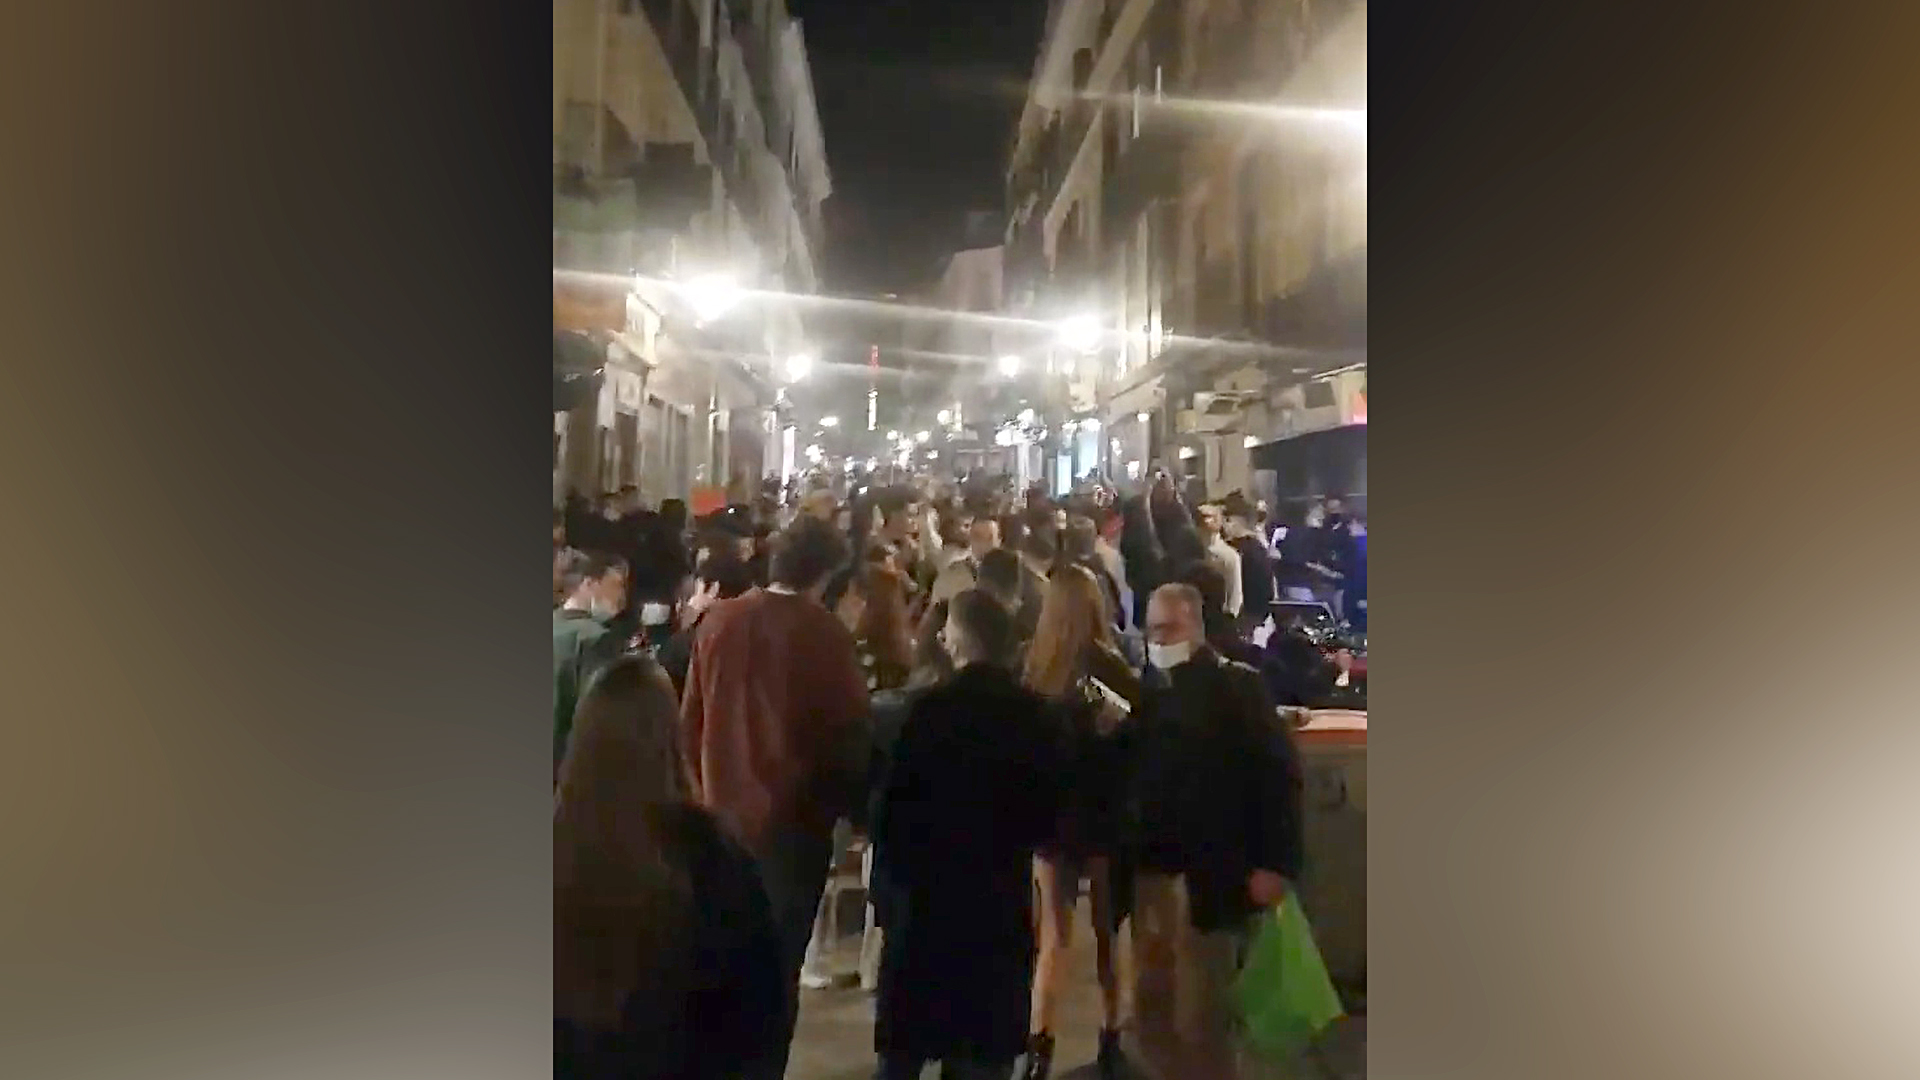 VIDEO: Hordes Of Partygoers Gather On Madrid Streets And Ignore COVID Restrictions